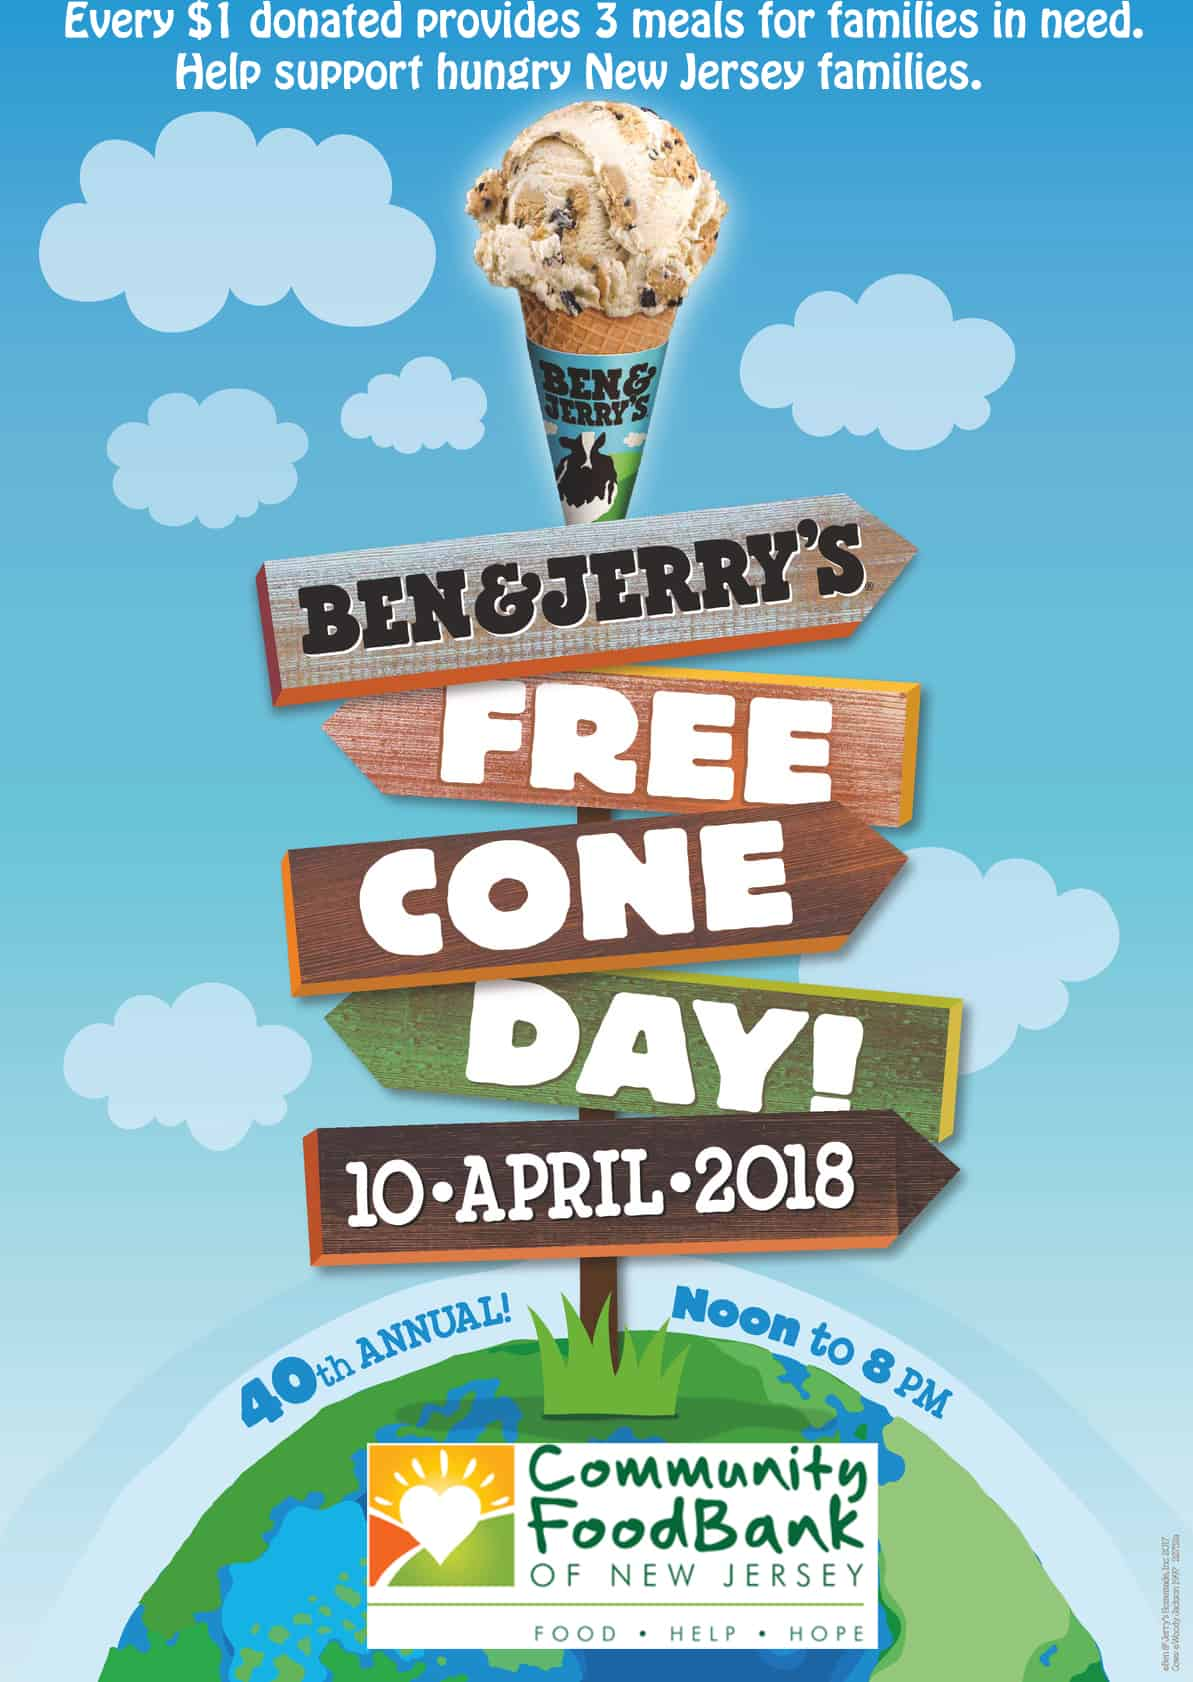 free cone day ben and jerrys 2018